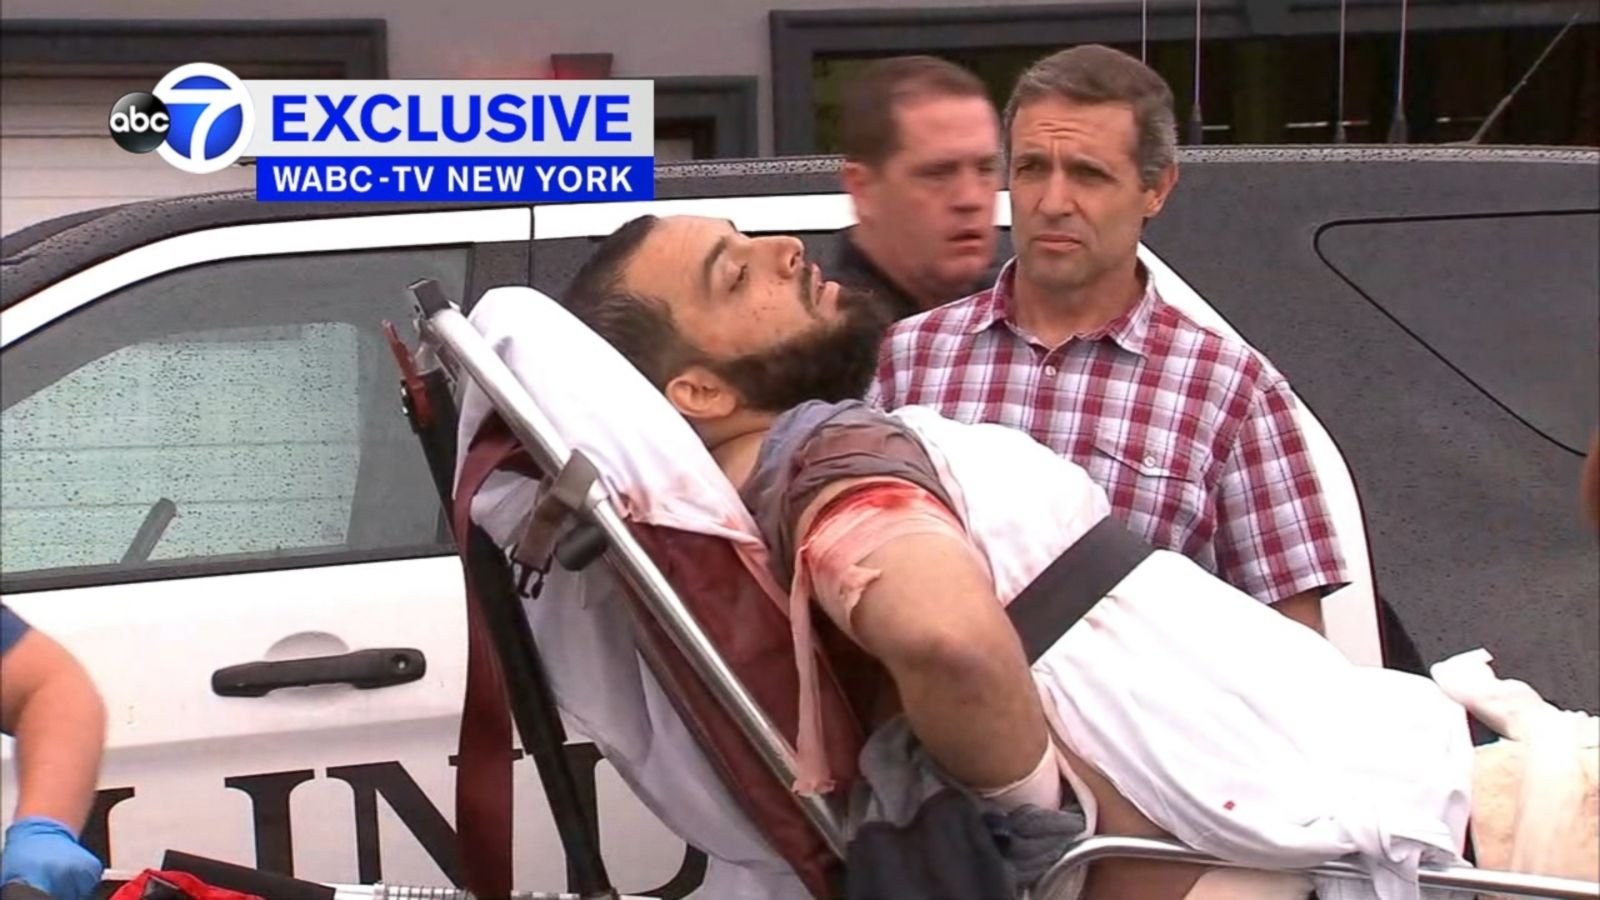 The 911 call that led police to the suspected New York and New Jersey bomber in Linden, New Jersey, last week has been obtained today by ABC News.